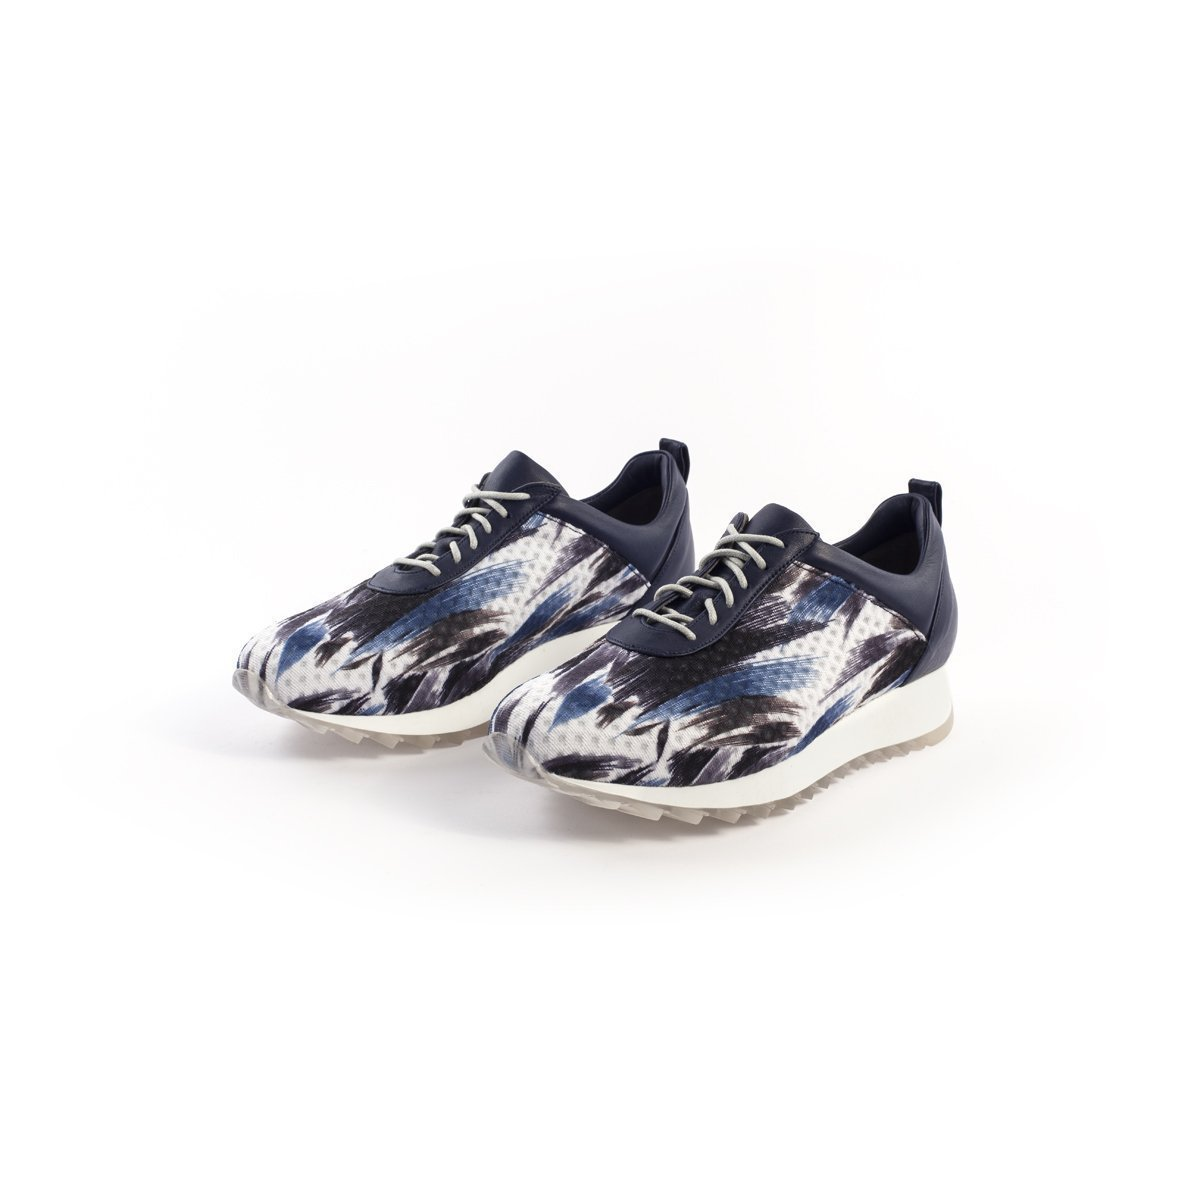 Blue Leather Platform Sneakers with a Combination of Blue Paint Stroke Printed on Textile, Women's Designer Handmade Footwear